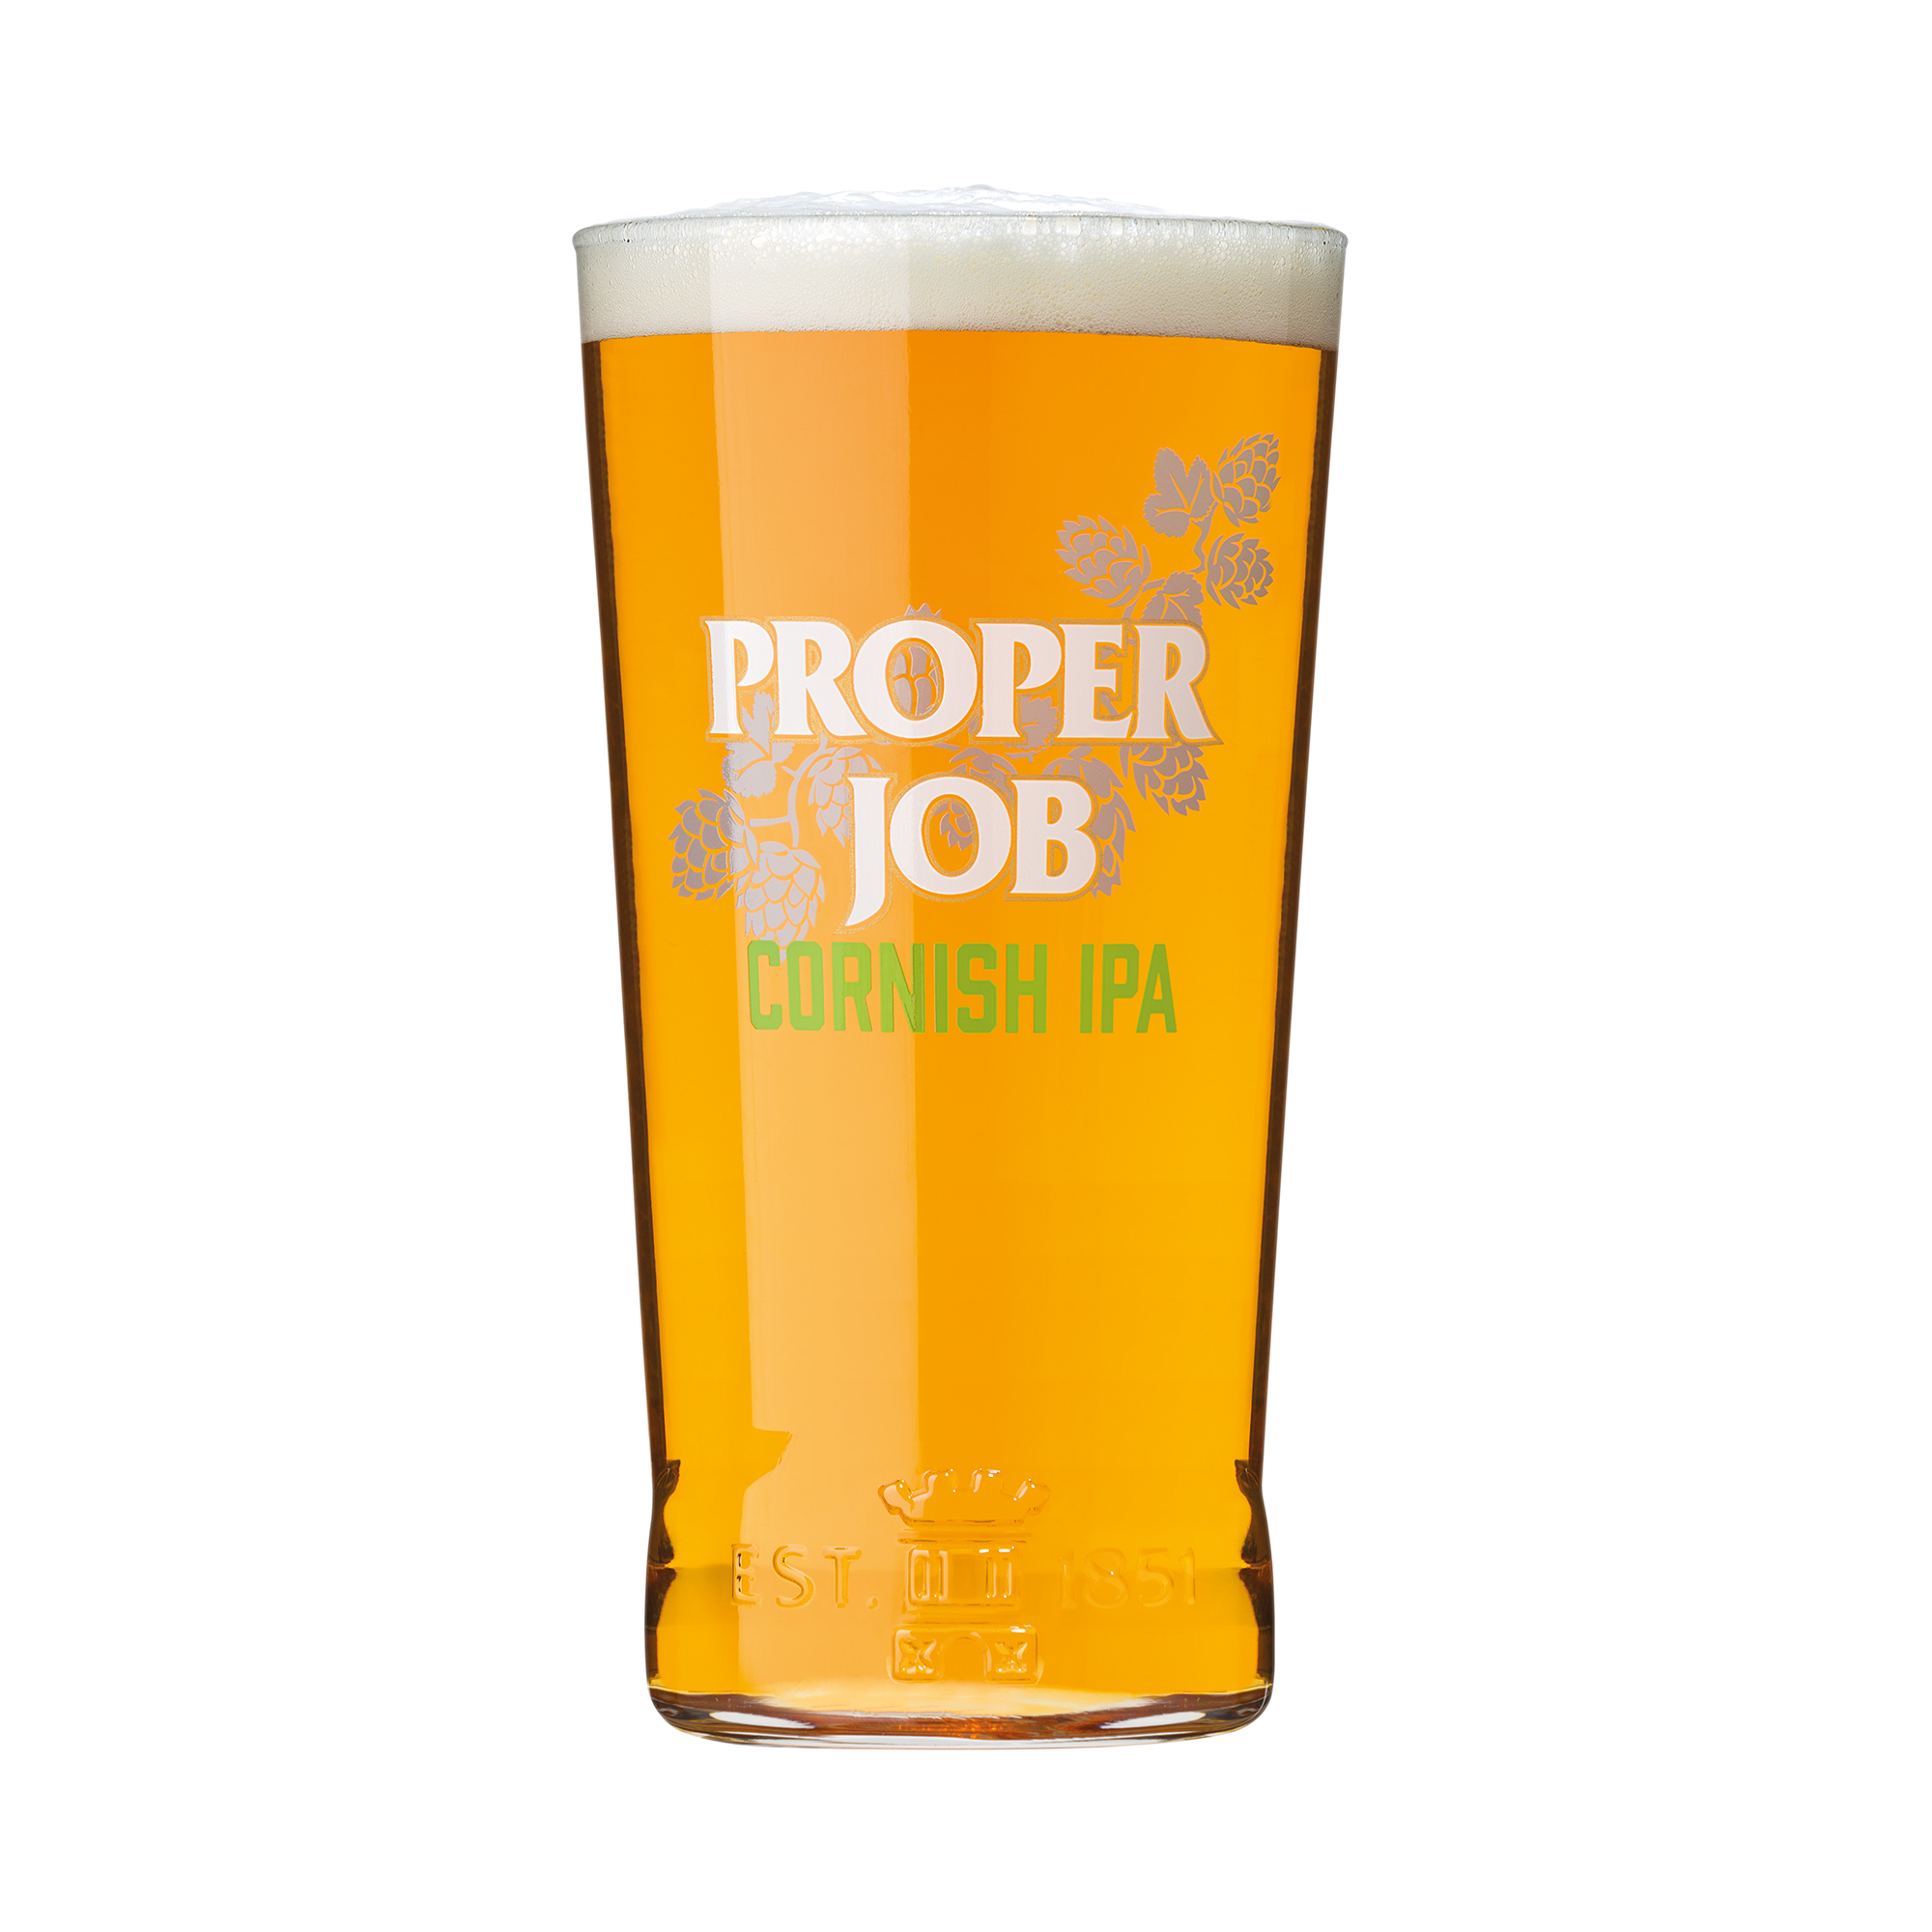 Proper-Job-Pint-Glass-1